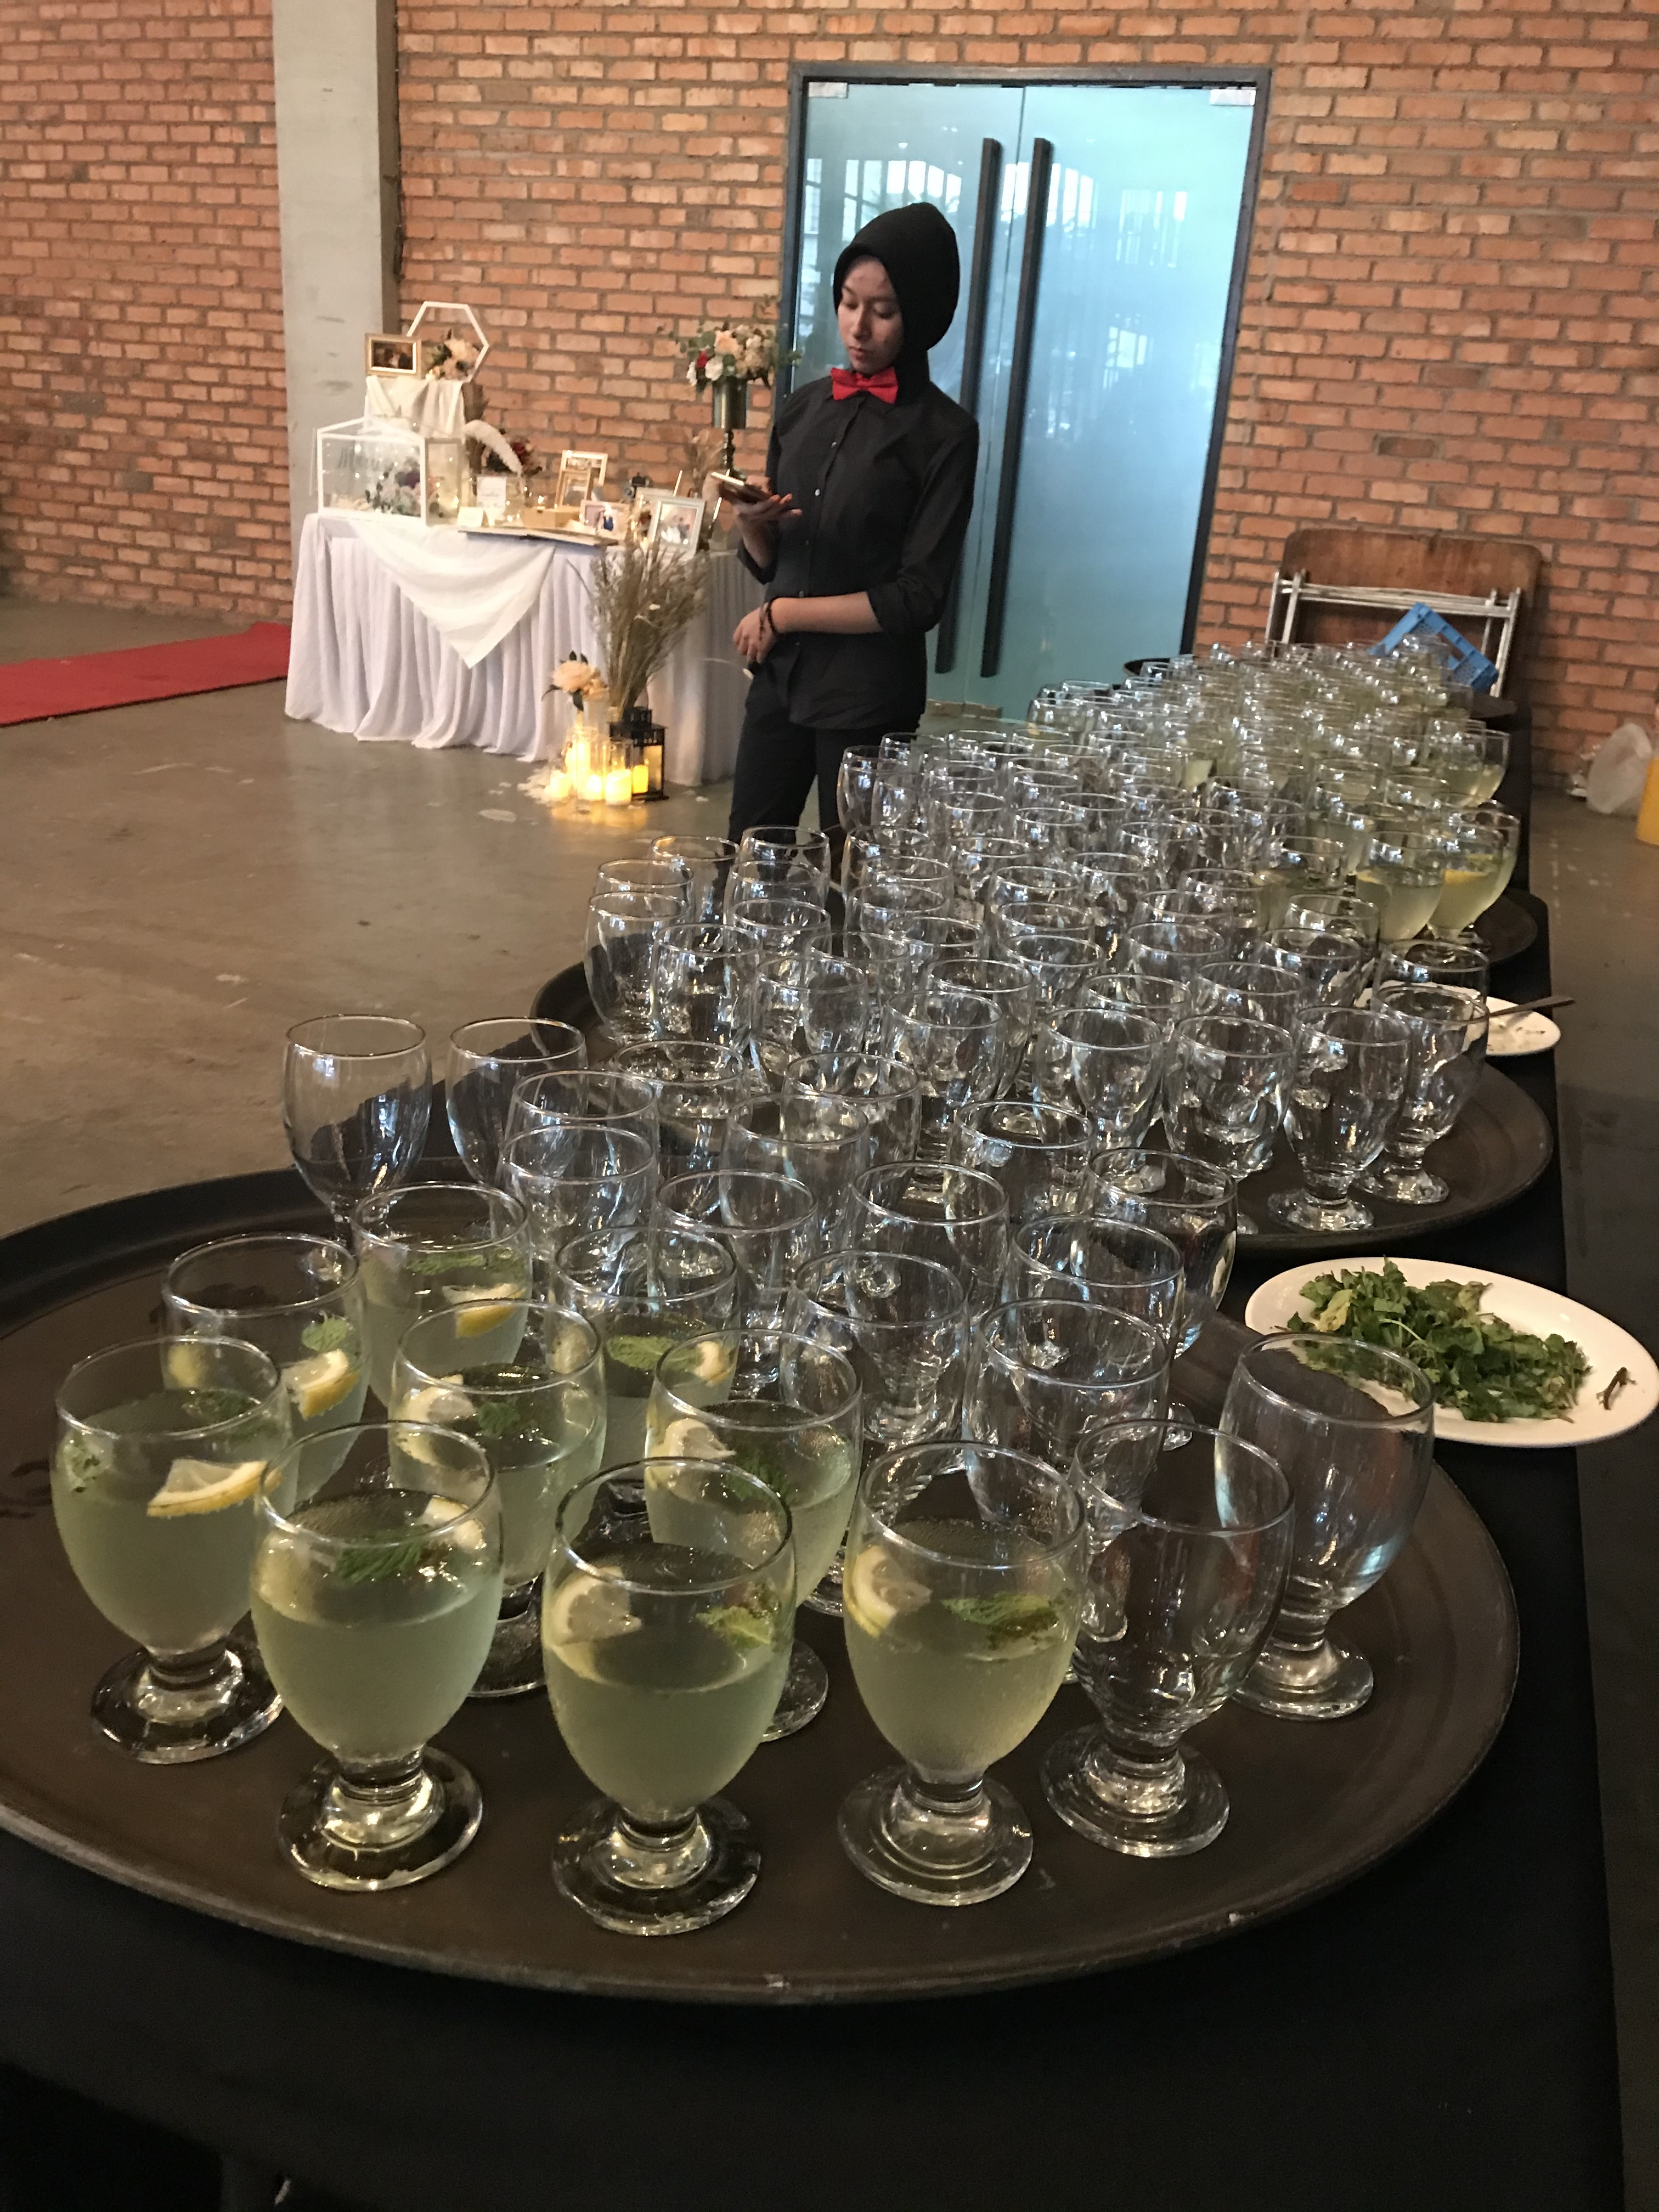 runningmen catering sit down menu event footage with cocktail drinks